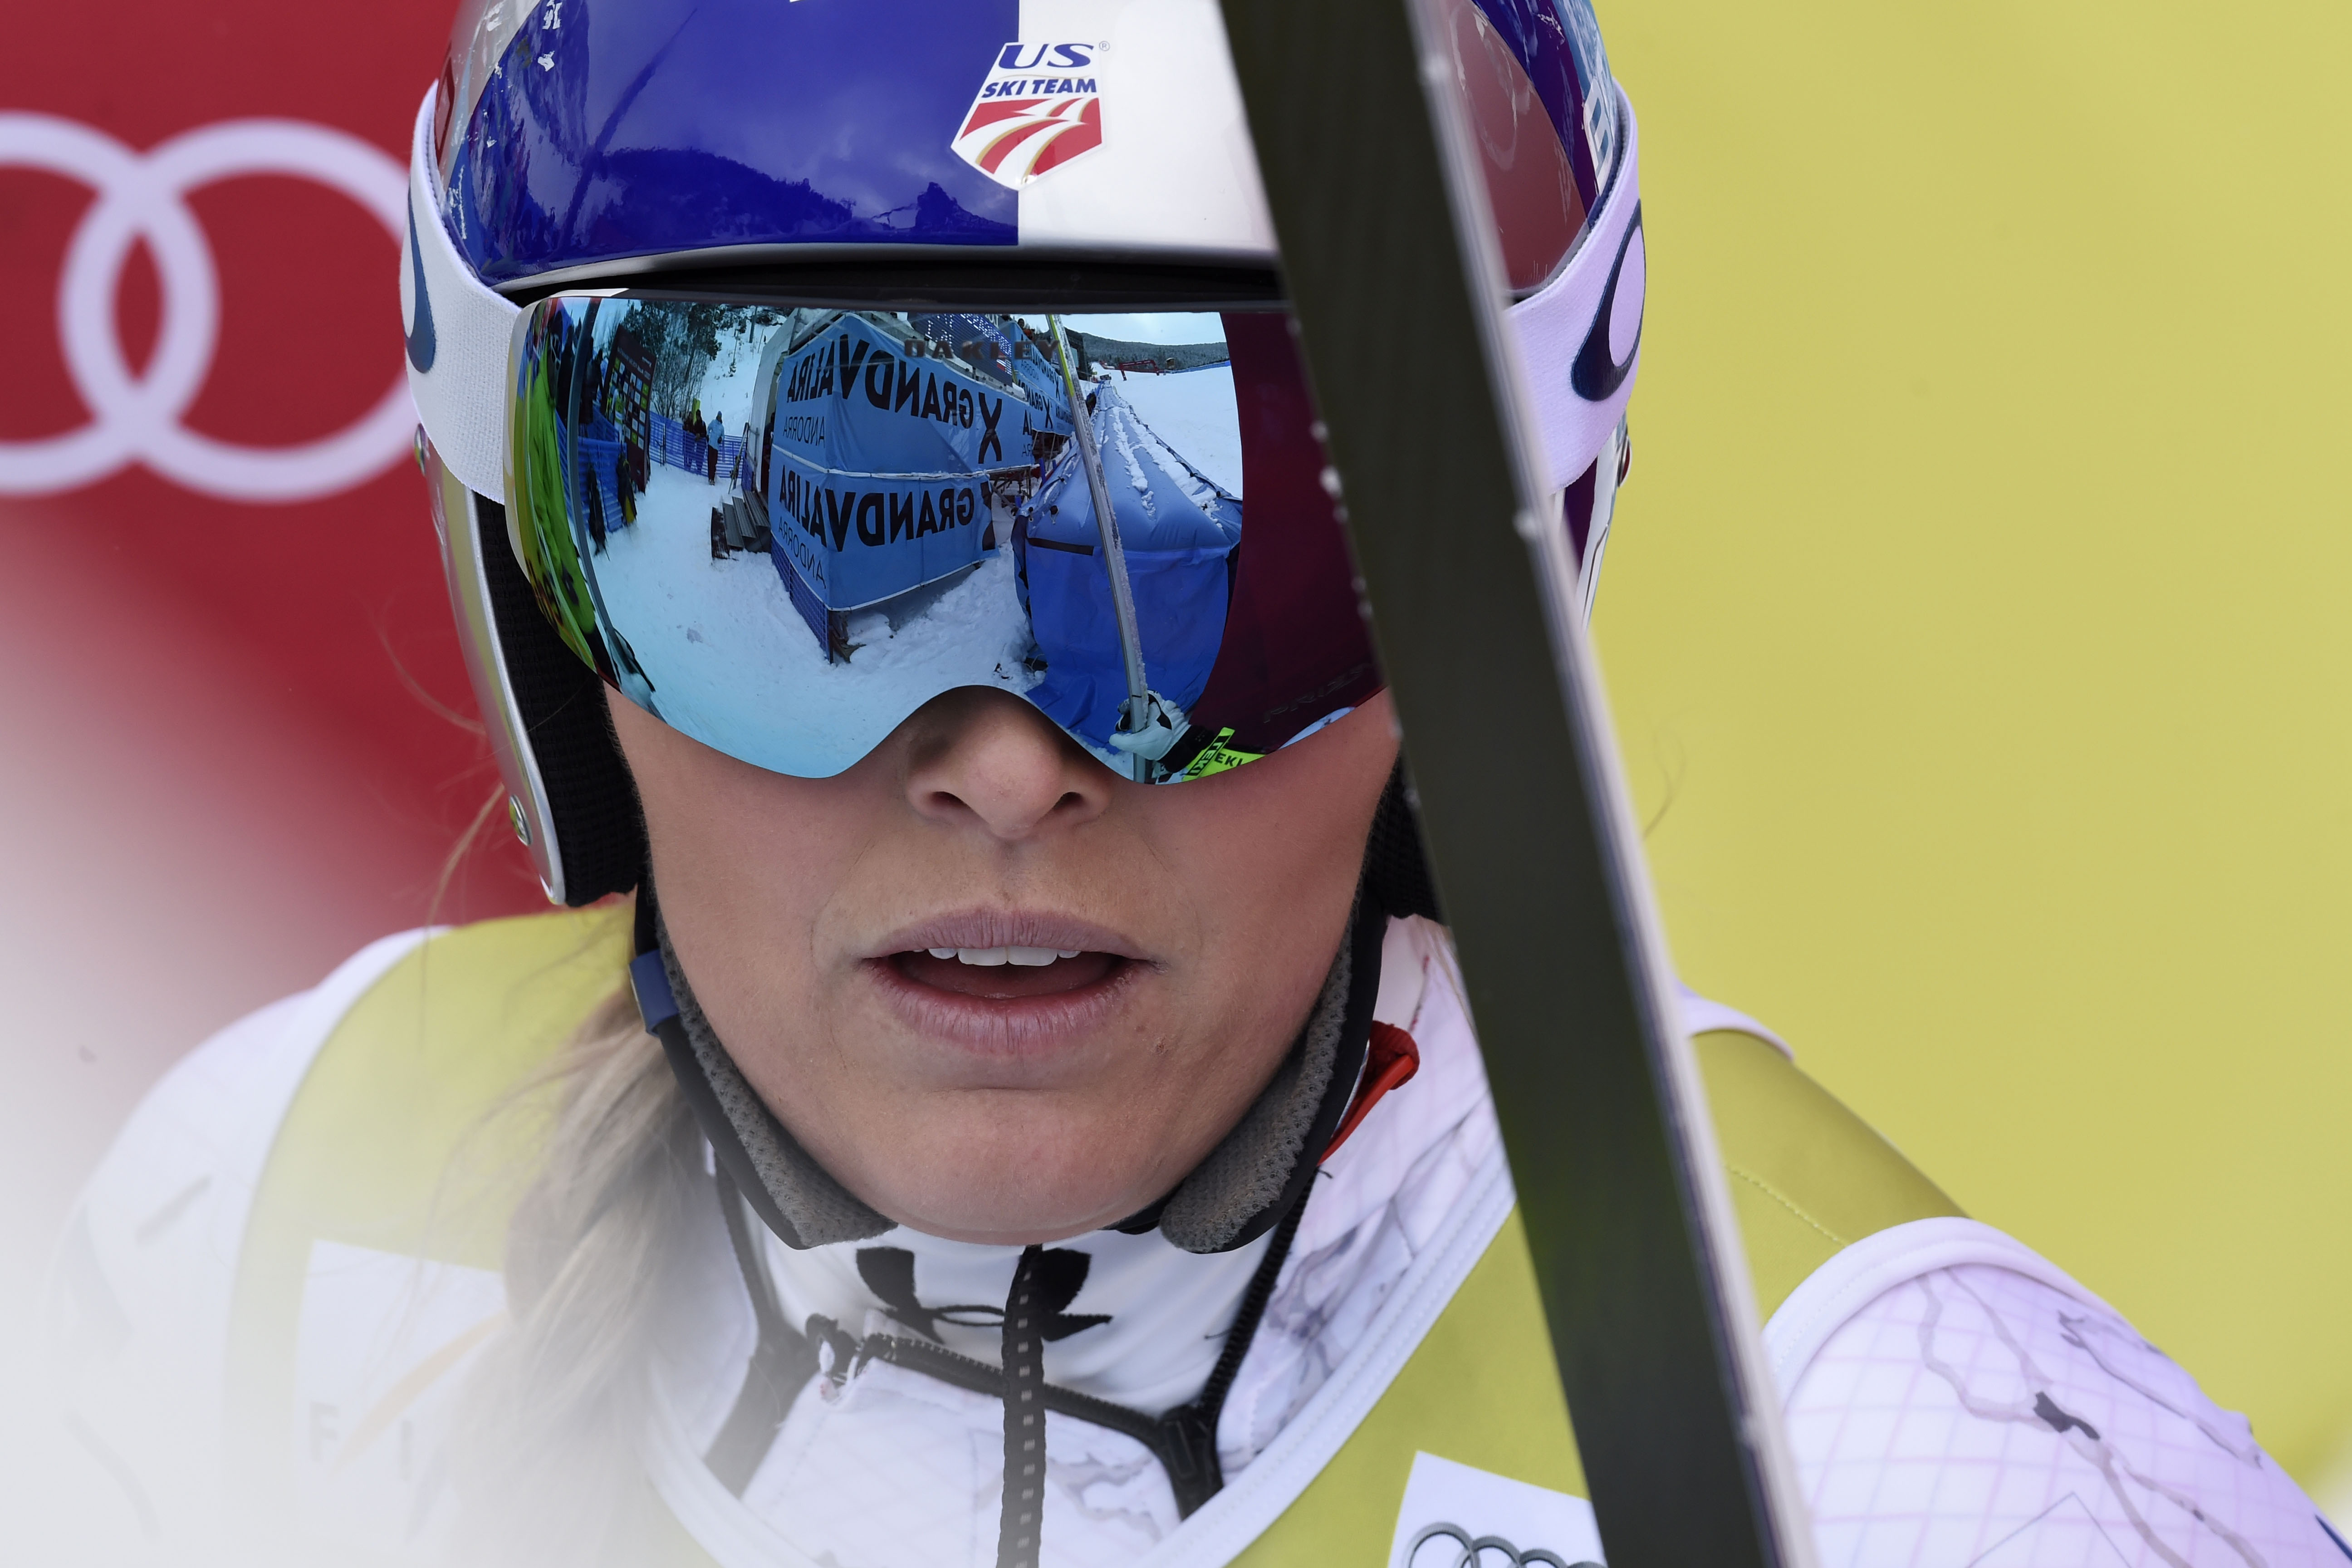 Lindsey Vonn of the USA competes during the Audi FIS Alpine Ski World Cup Women's Super Combined on February 28, 2016 in Soldeu, Andorra. (Photo by Alexis Boichard/Agence Zoom/Getty Images)